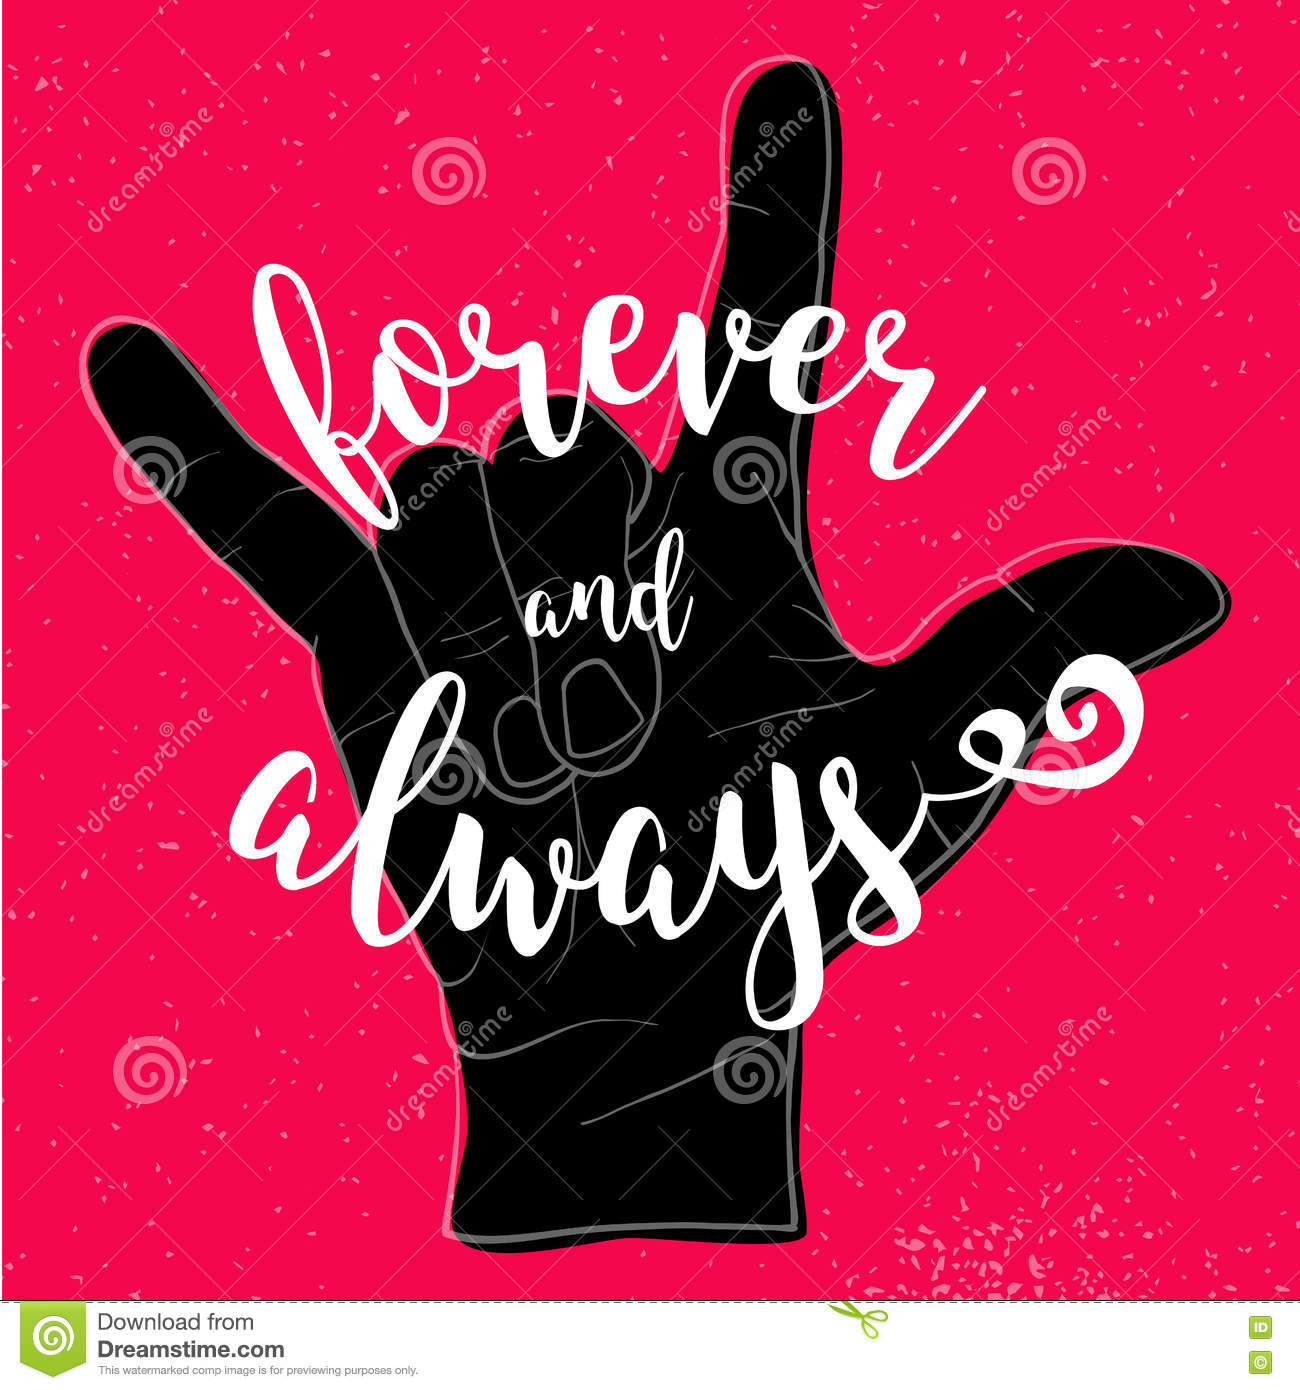 Forever and always quote with devil hand symbol stock vector forever and always quote with devil hand symbol greeting banner buycottarizona